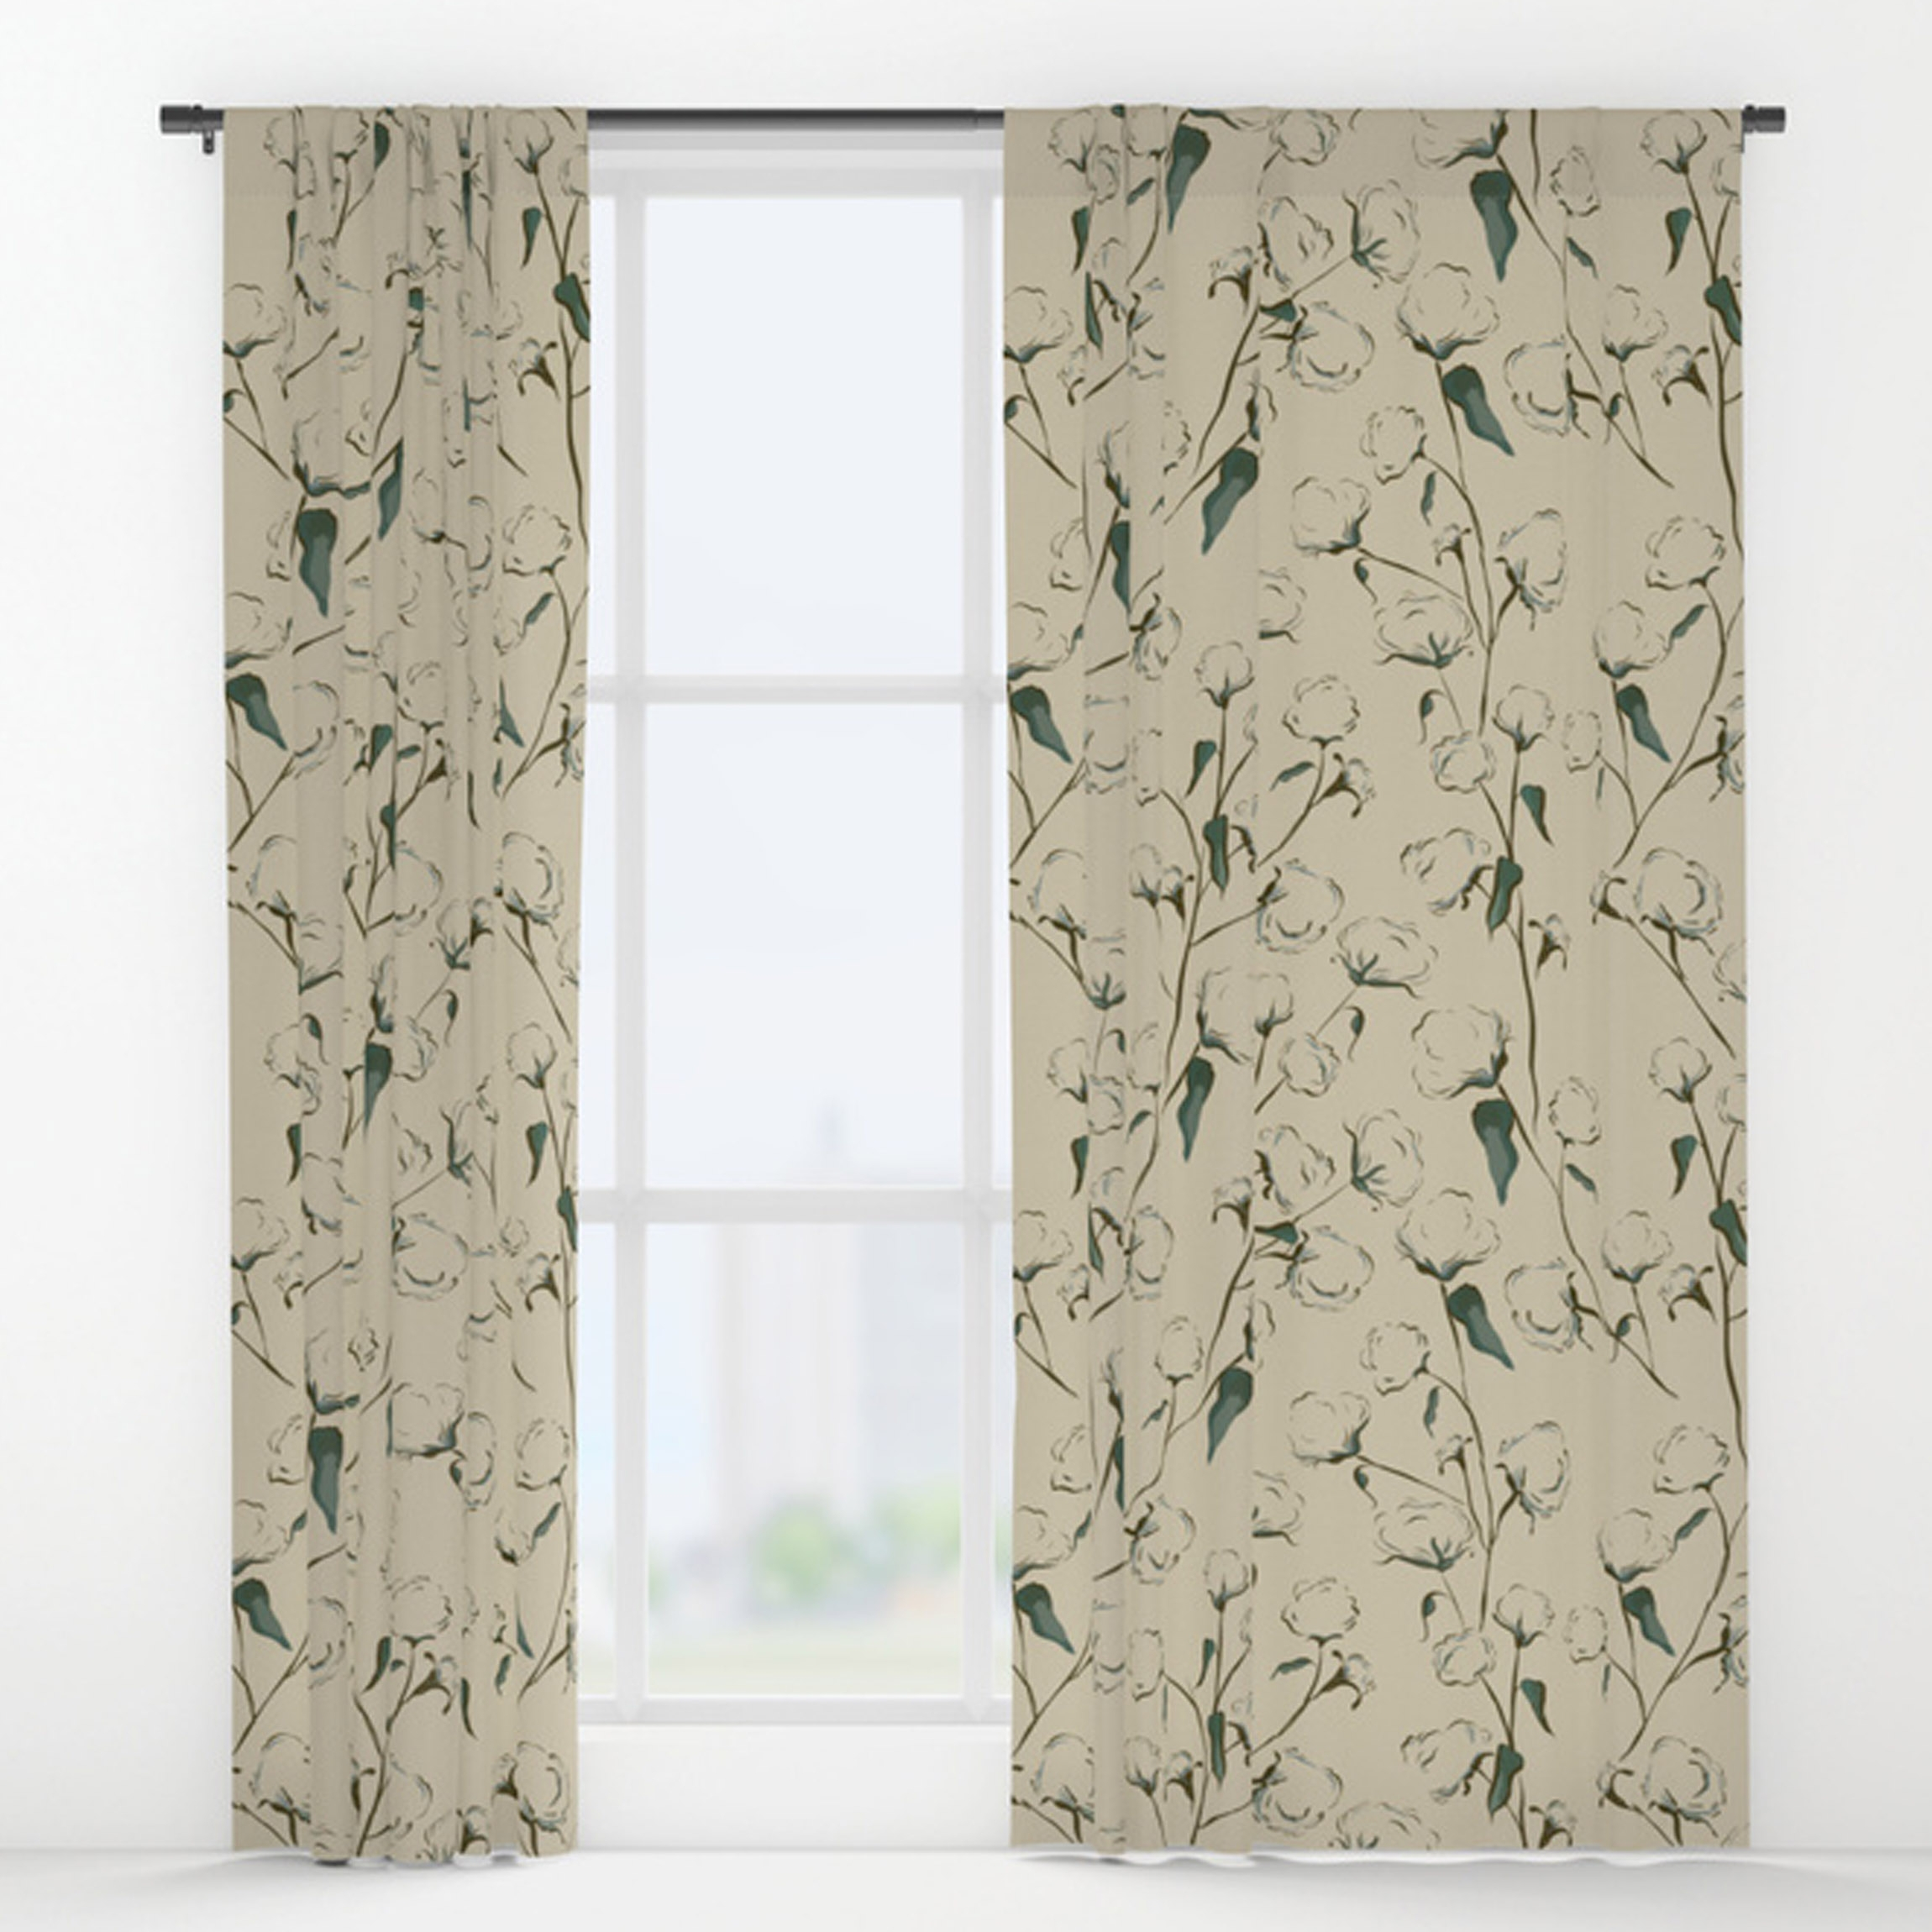 Curtains   Starting at $79   (more options available)